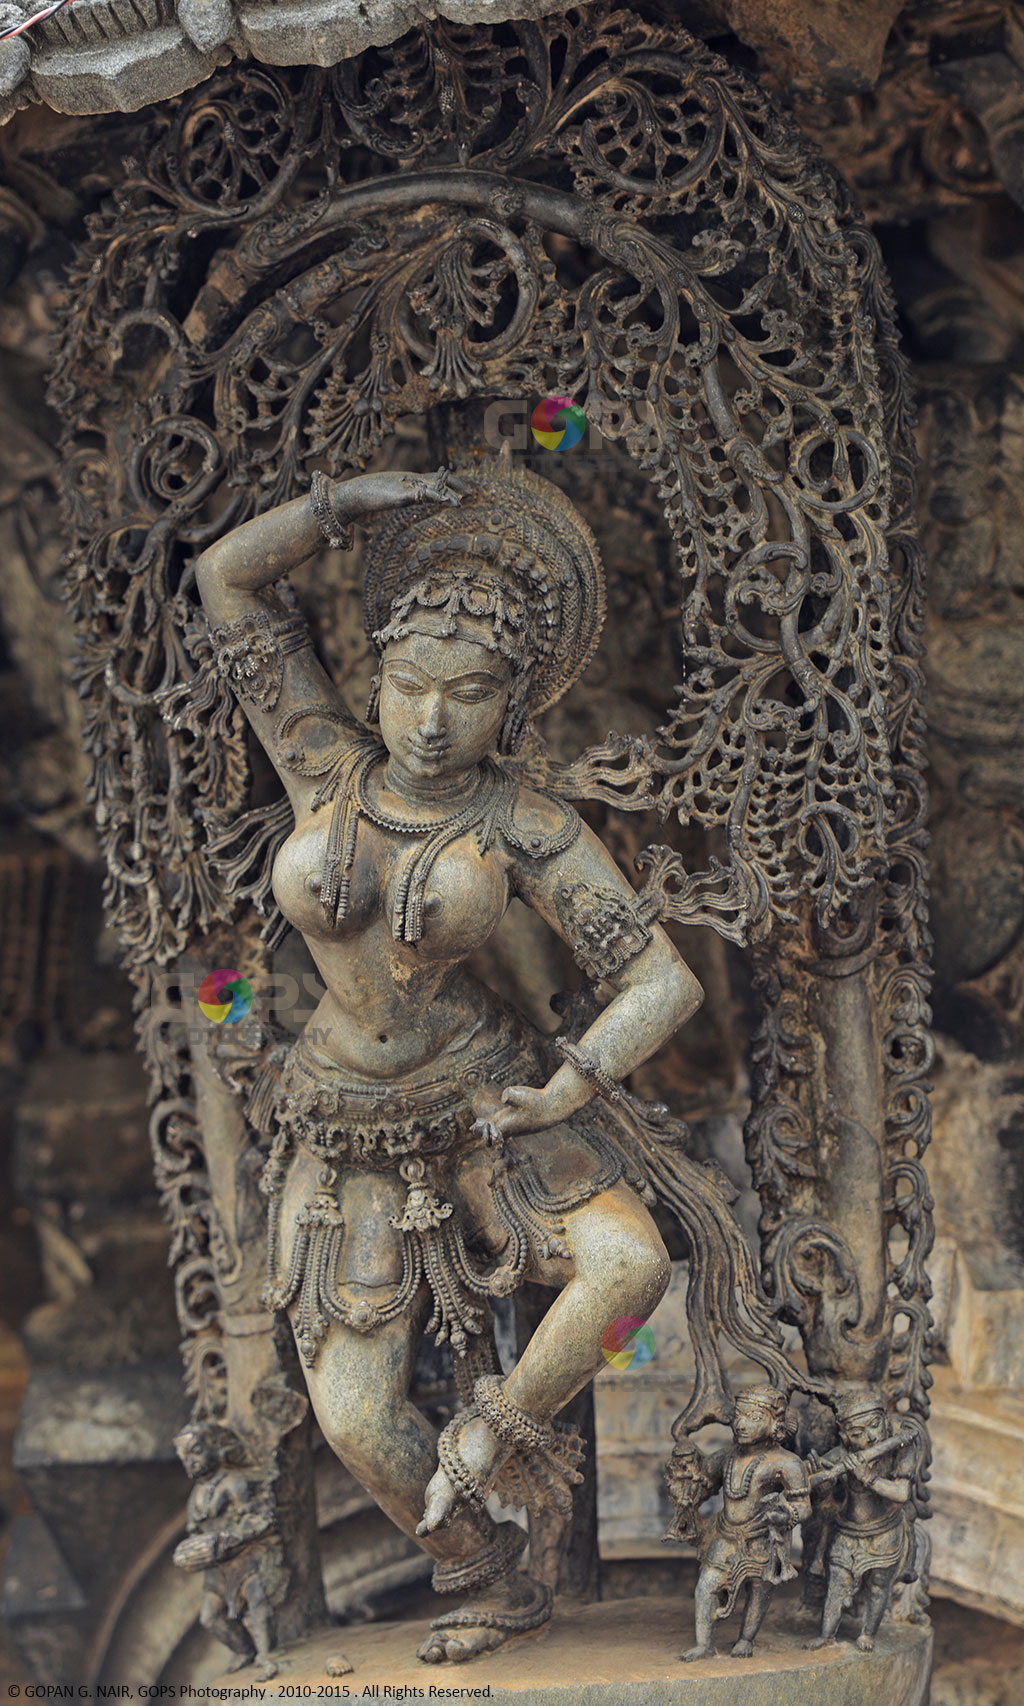 STATUE OF MOHINI, IN THE MOST PERFECT DANCE POSTURE. IT HAS BEEN CONSTRUCTED IN PERFECT SYMMETRY, SO THAT IF YOU LET A DROP OF WATER FALL FROM THE TIP OF HER RIGHT HAND RAISED ABOVE THE HEAD, IT WOULD TOUCH HER NOSE, THEN TOUCH THE LEFT BREAST, TIP OF THE LEFT HAND AND FINALLY LAND ON THE TOE OF HER LEFT FOOT